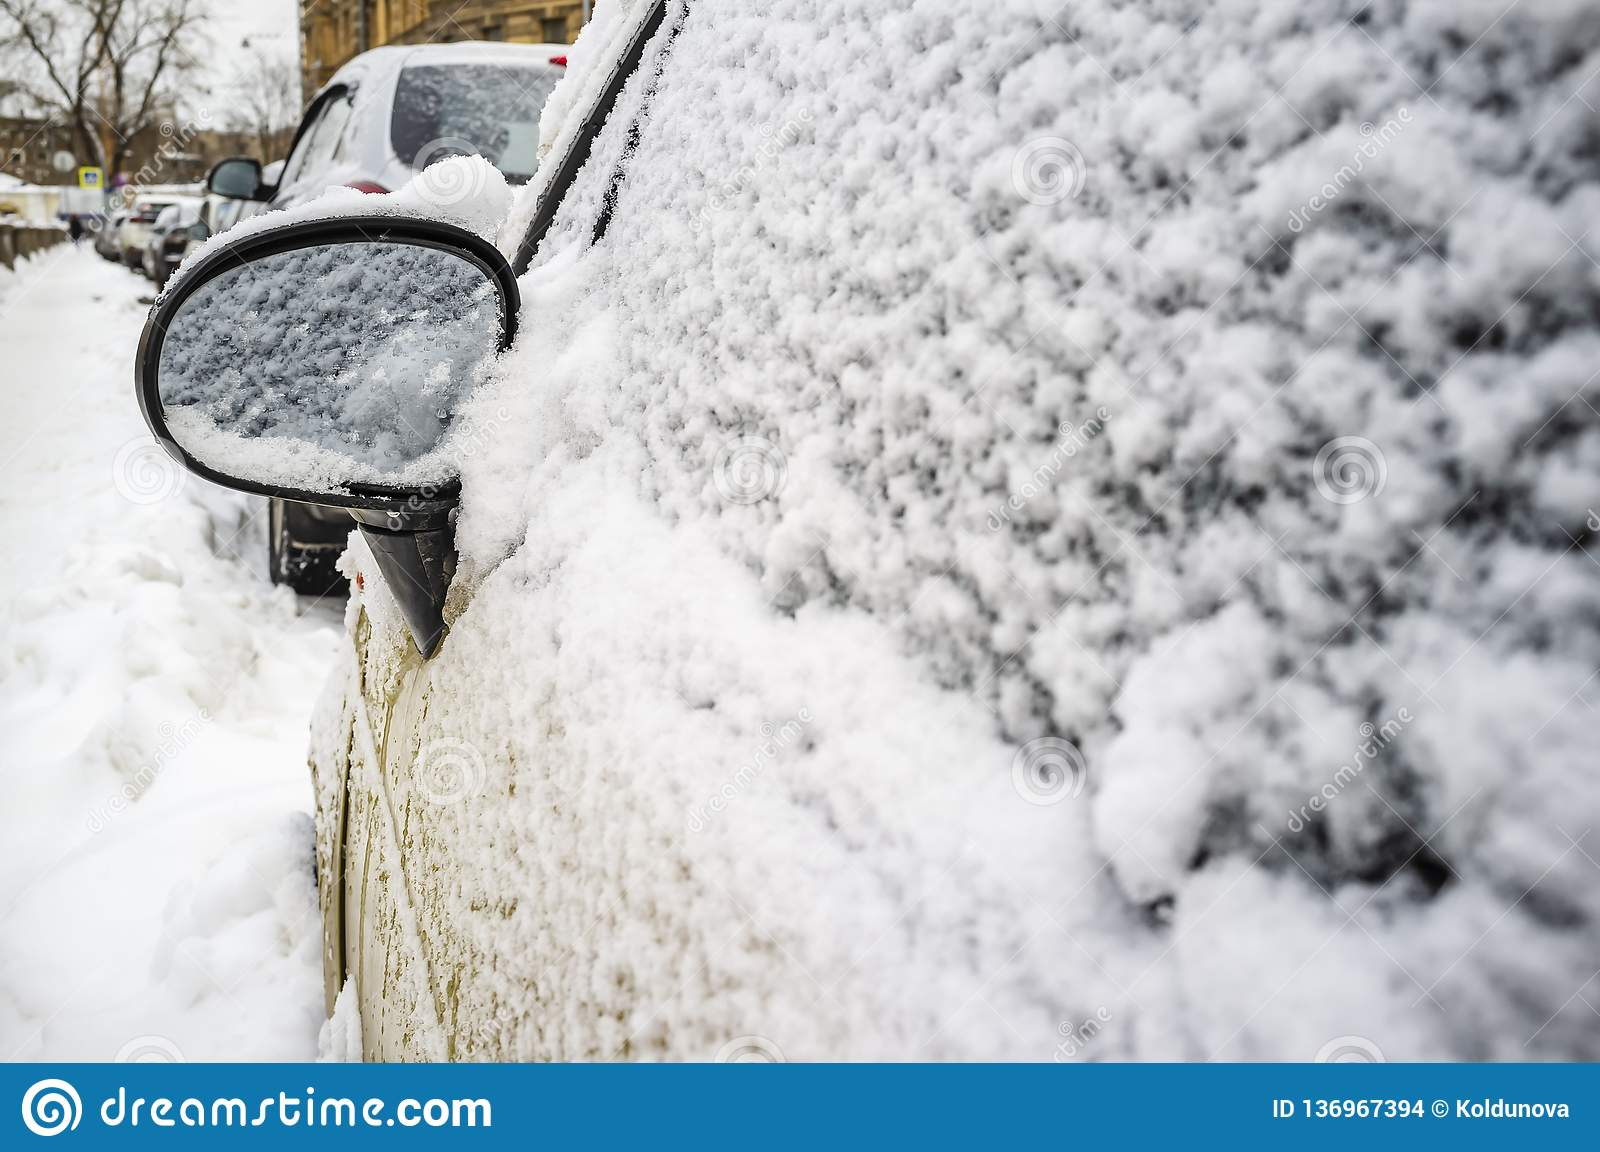 Car covered with snow and a rearview mirror close-up